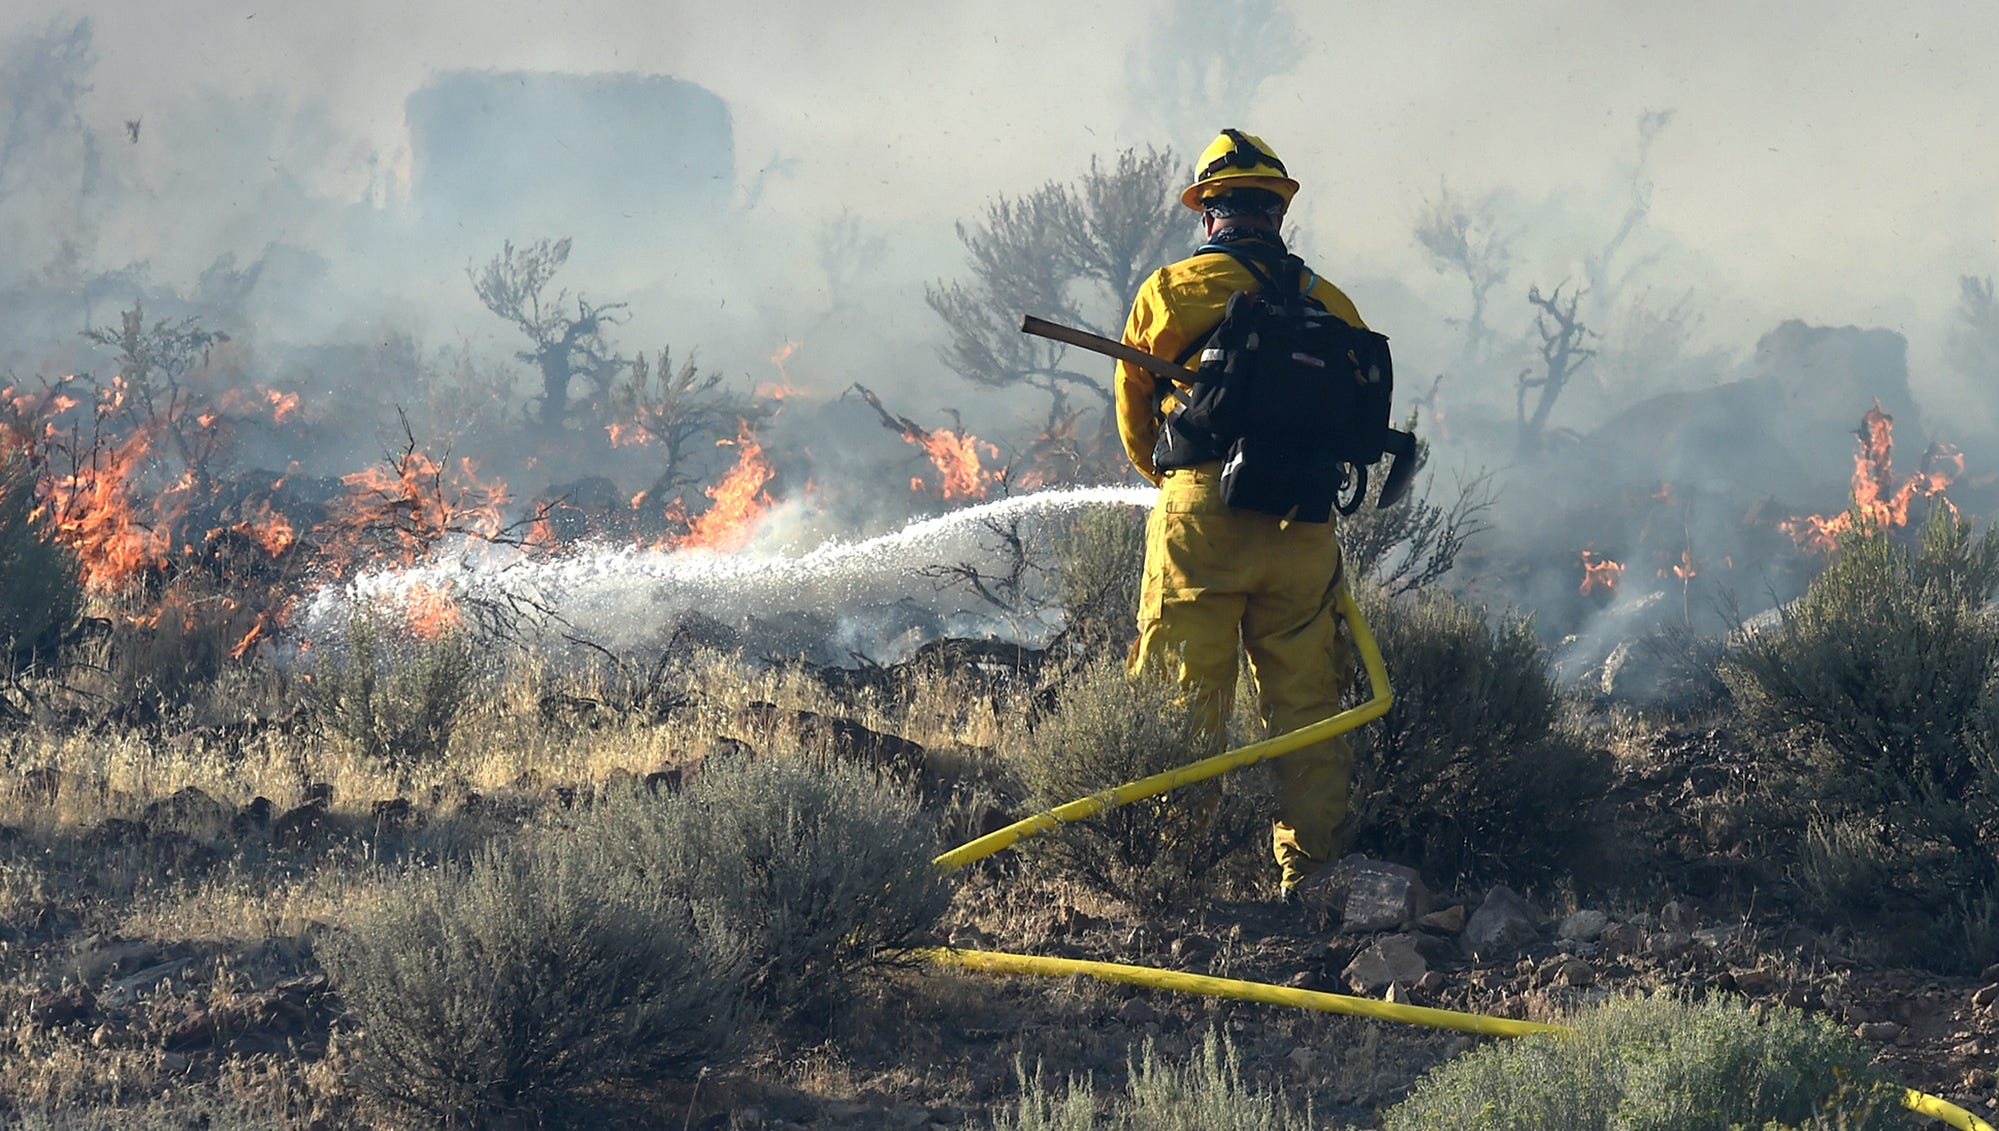 A firefighter hoses down a brush fire on the hills behind the IGT building in Reno on Monday afternoon on August 20, 2018.